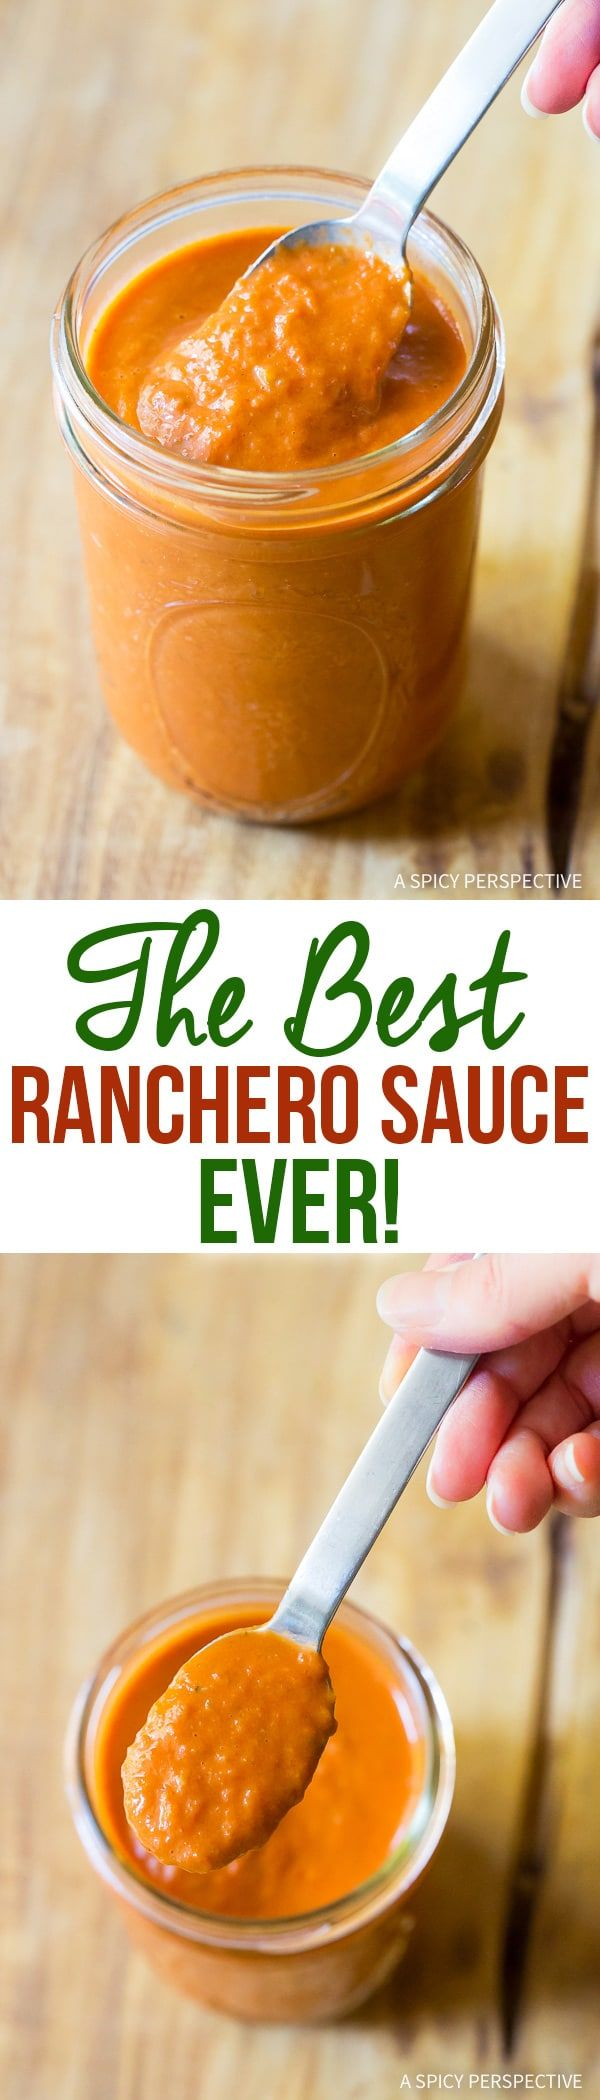 The Best Ranchero Sauce Recipe Ever - Looking for the ultimate ranchero sauce recipe? You found it! Creamy, robust, and a hint spicy. This sauce makes every dish taste better! via @spicyperspectiv